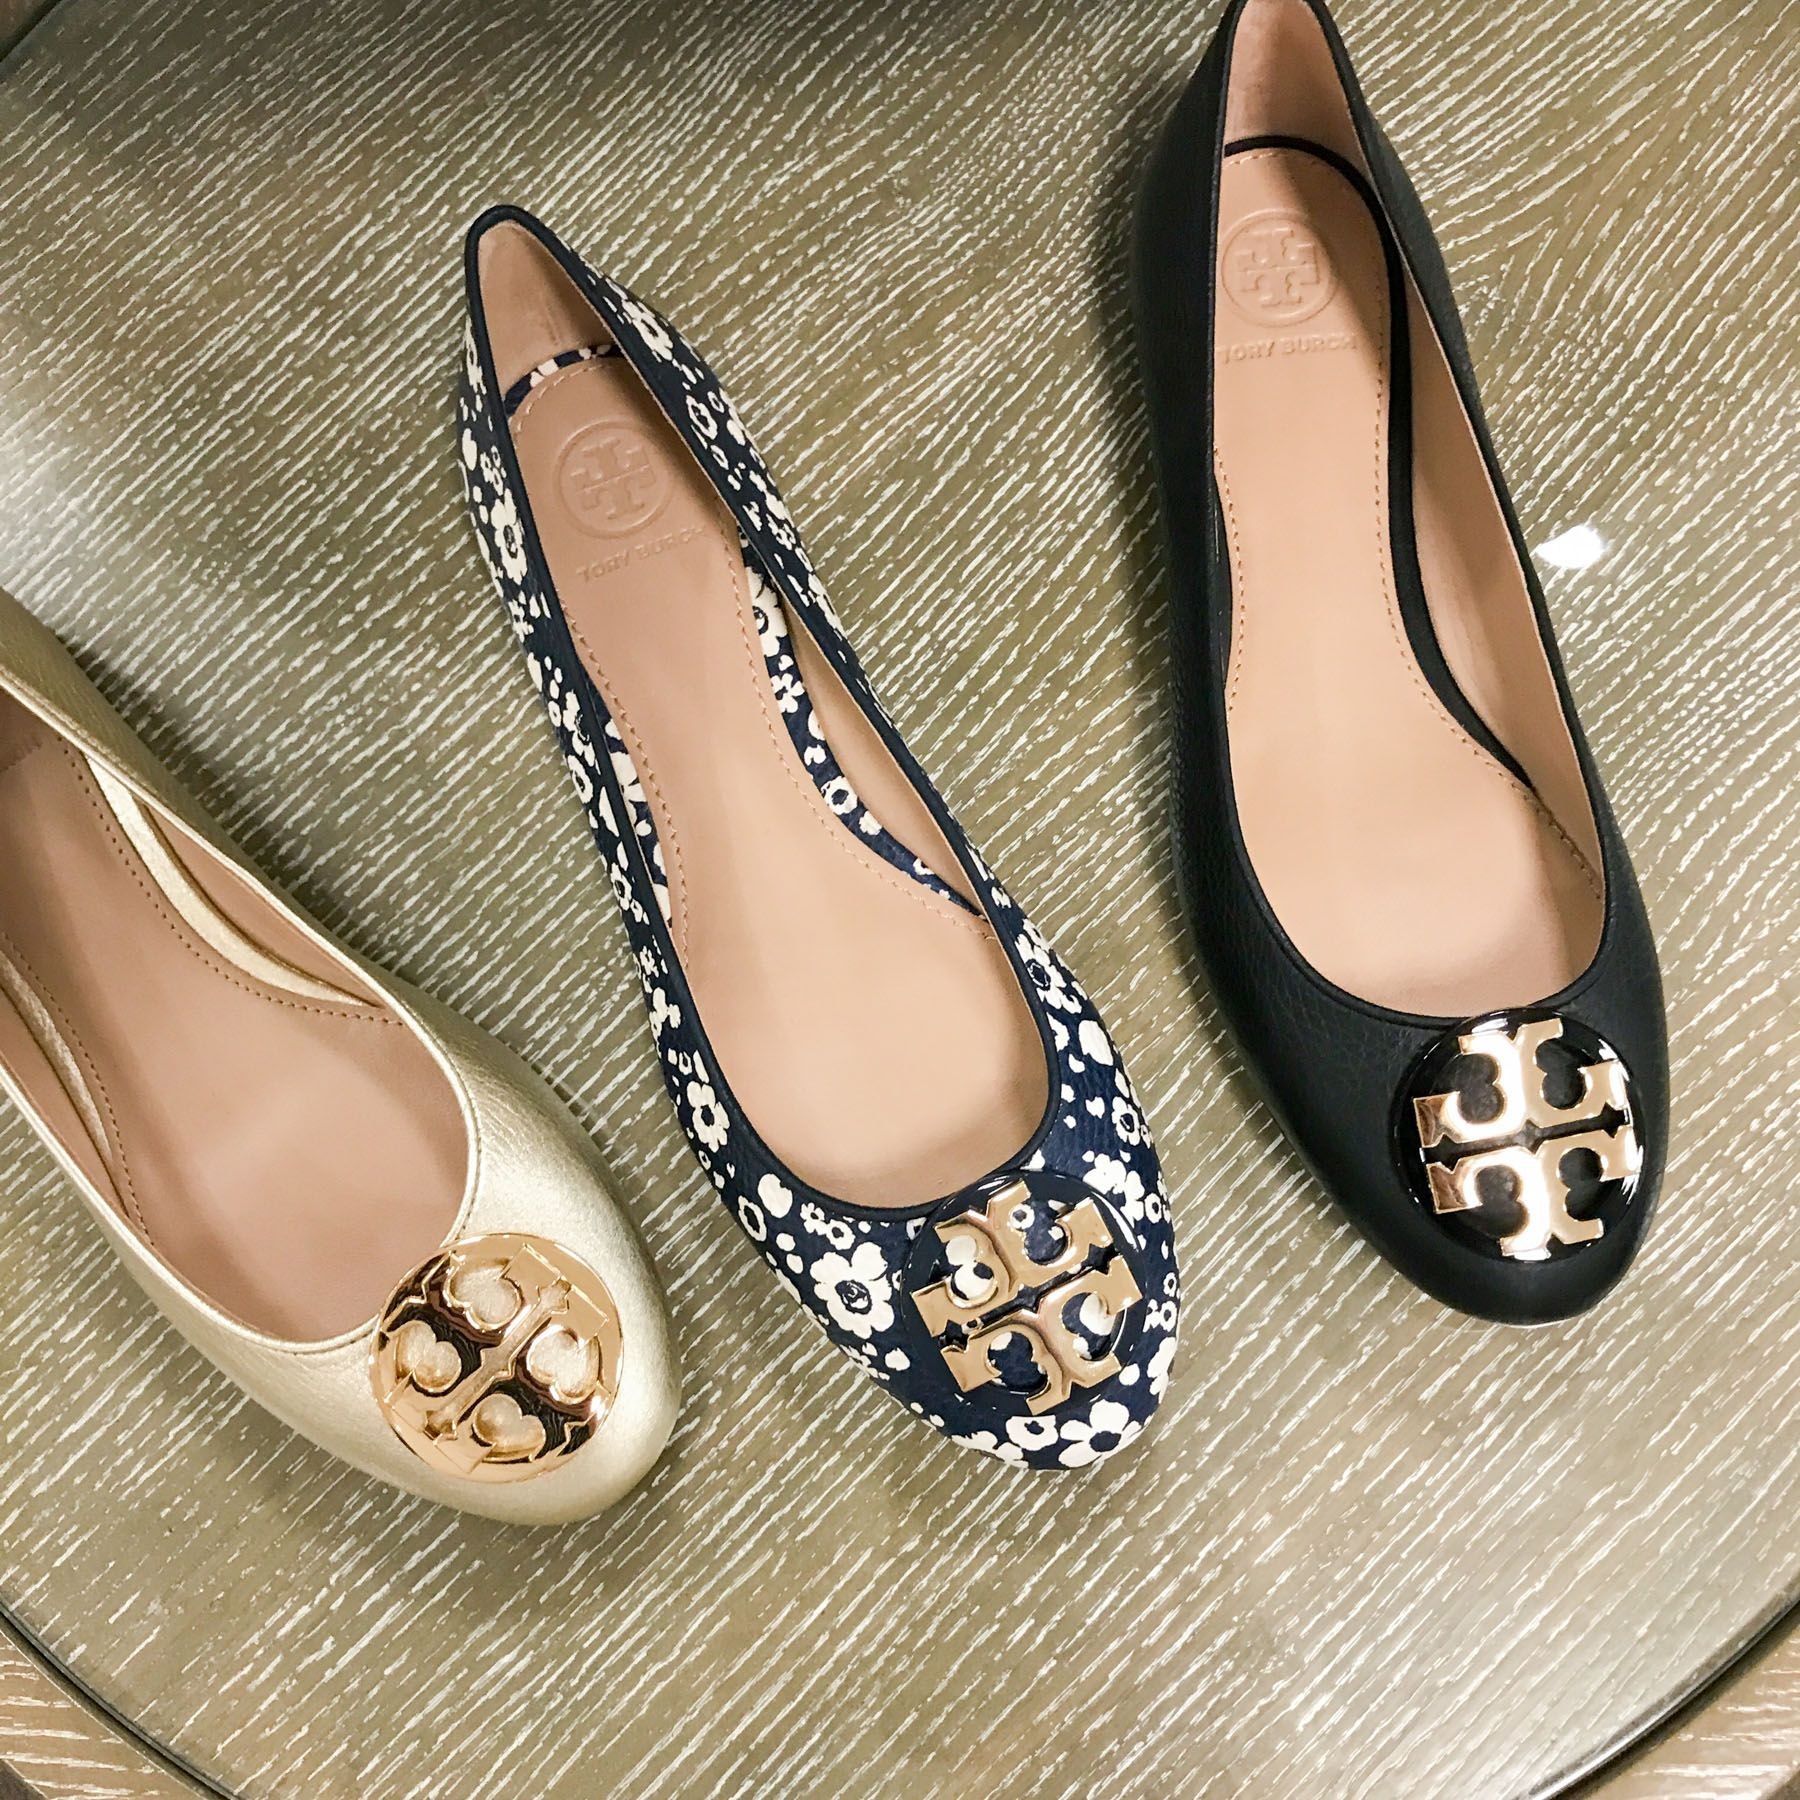 tory burch shoes nordstrom